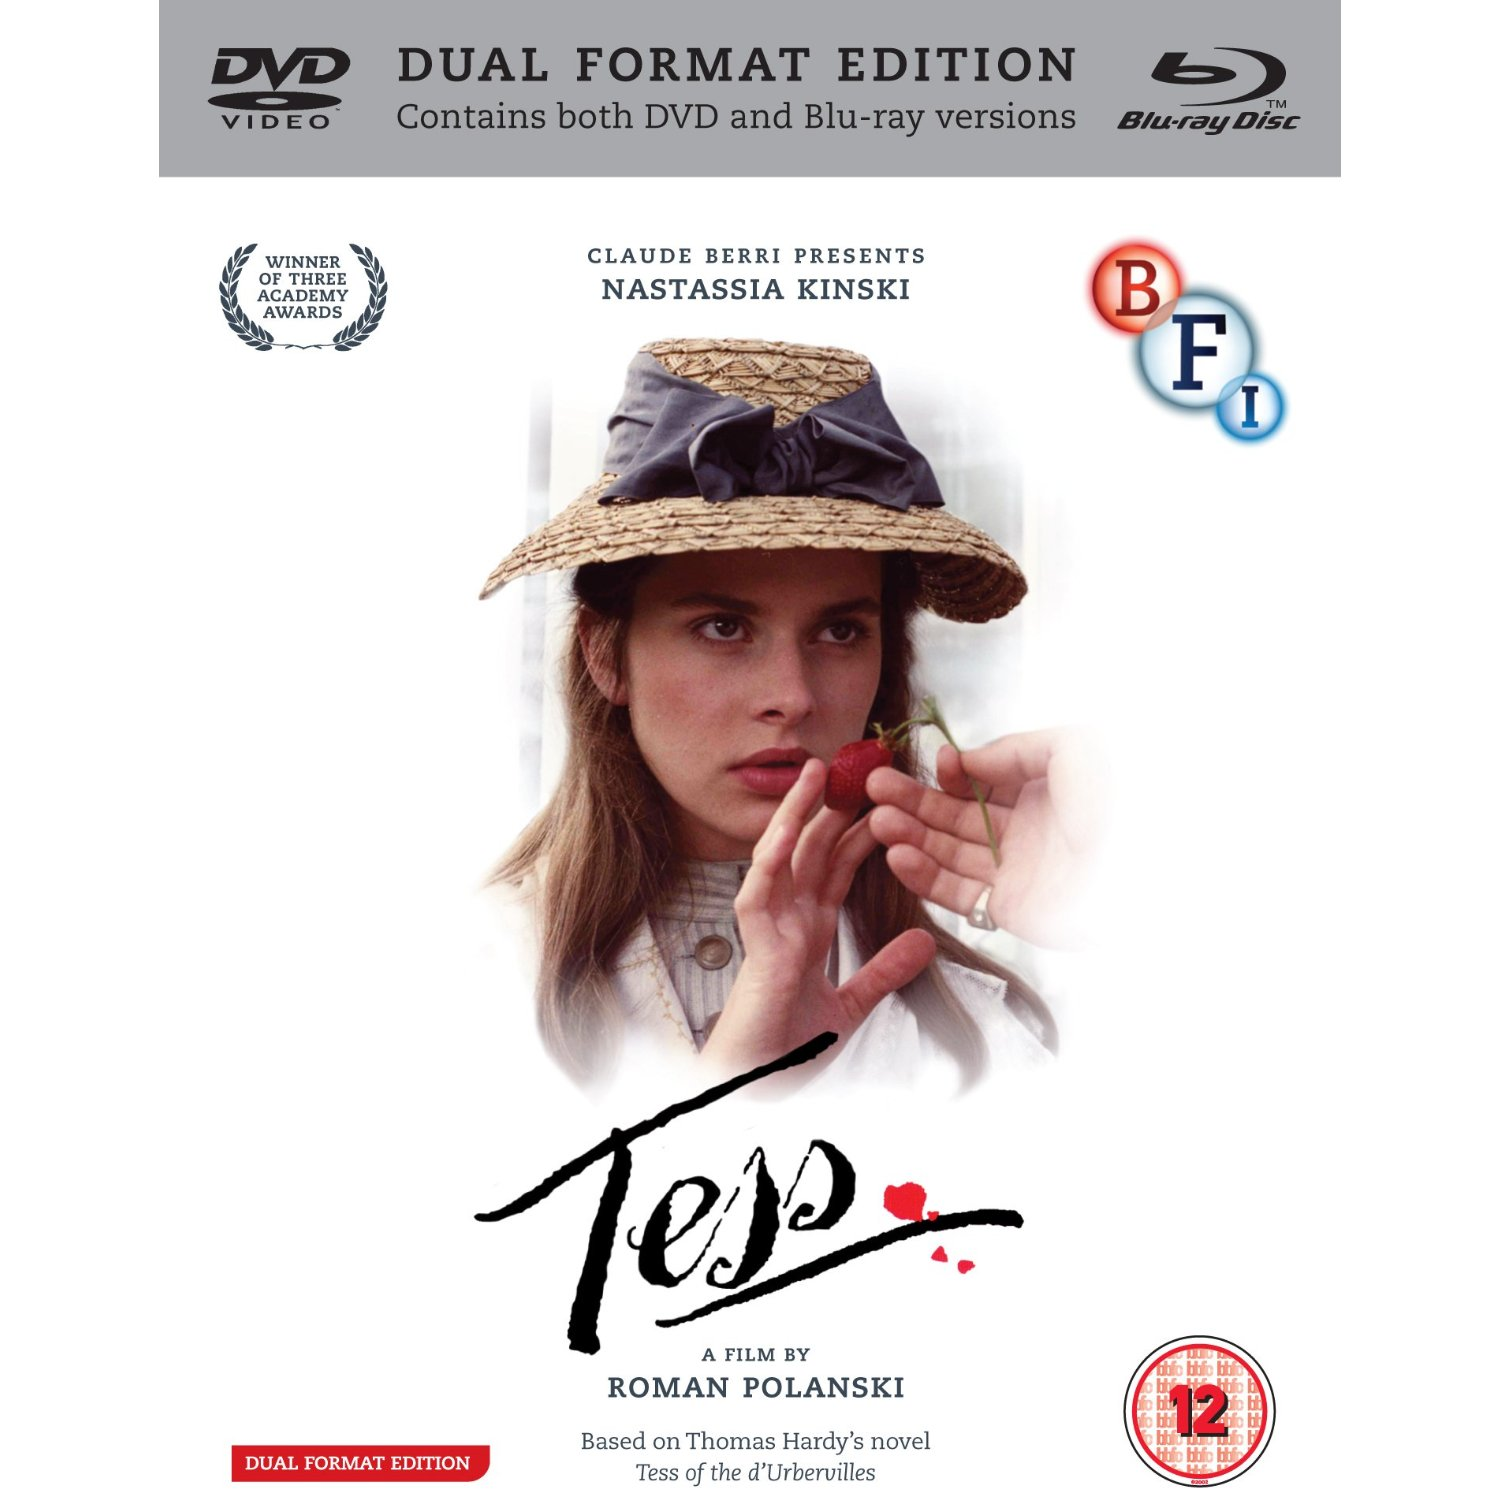 nothing but the night world classic film review tess 1979 r polanski s wistful adaptation of thomas hardy s 1891 novel tess of the d urbervilles was a languorous beautifully and meticulously filmed three hour